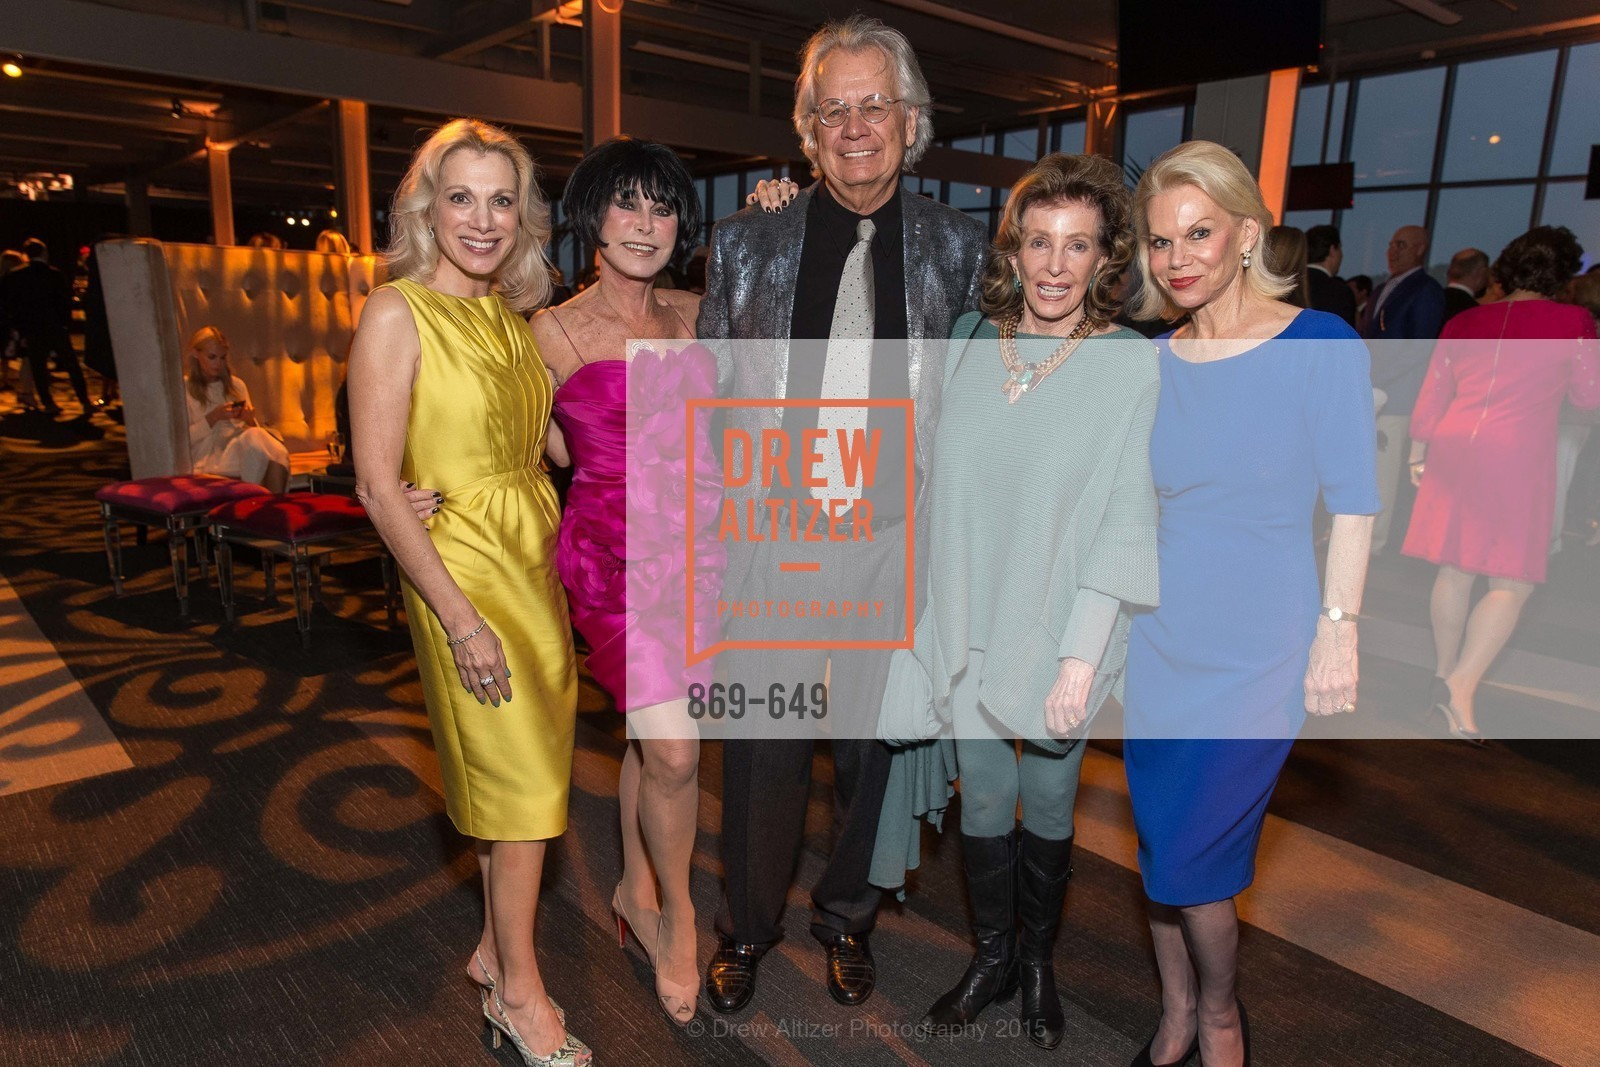 Cynthia Schreuder, Marilyn Cabak, Theodore Brown, Ellie Brown, Sandra Farris, Fashion Forward: An Evening with Erdem presented by SF Opera Guild and Saks Fifth Avenue, Pier 27. Pier 27, The Embarcadero, March 25th, 2015,Drew Altizer, Drew Altizer Photography, full-service agency, private events, San Francisco photographer, photographer california